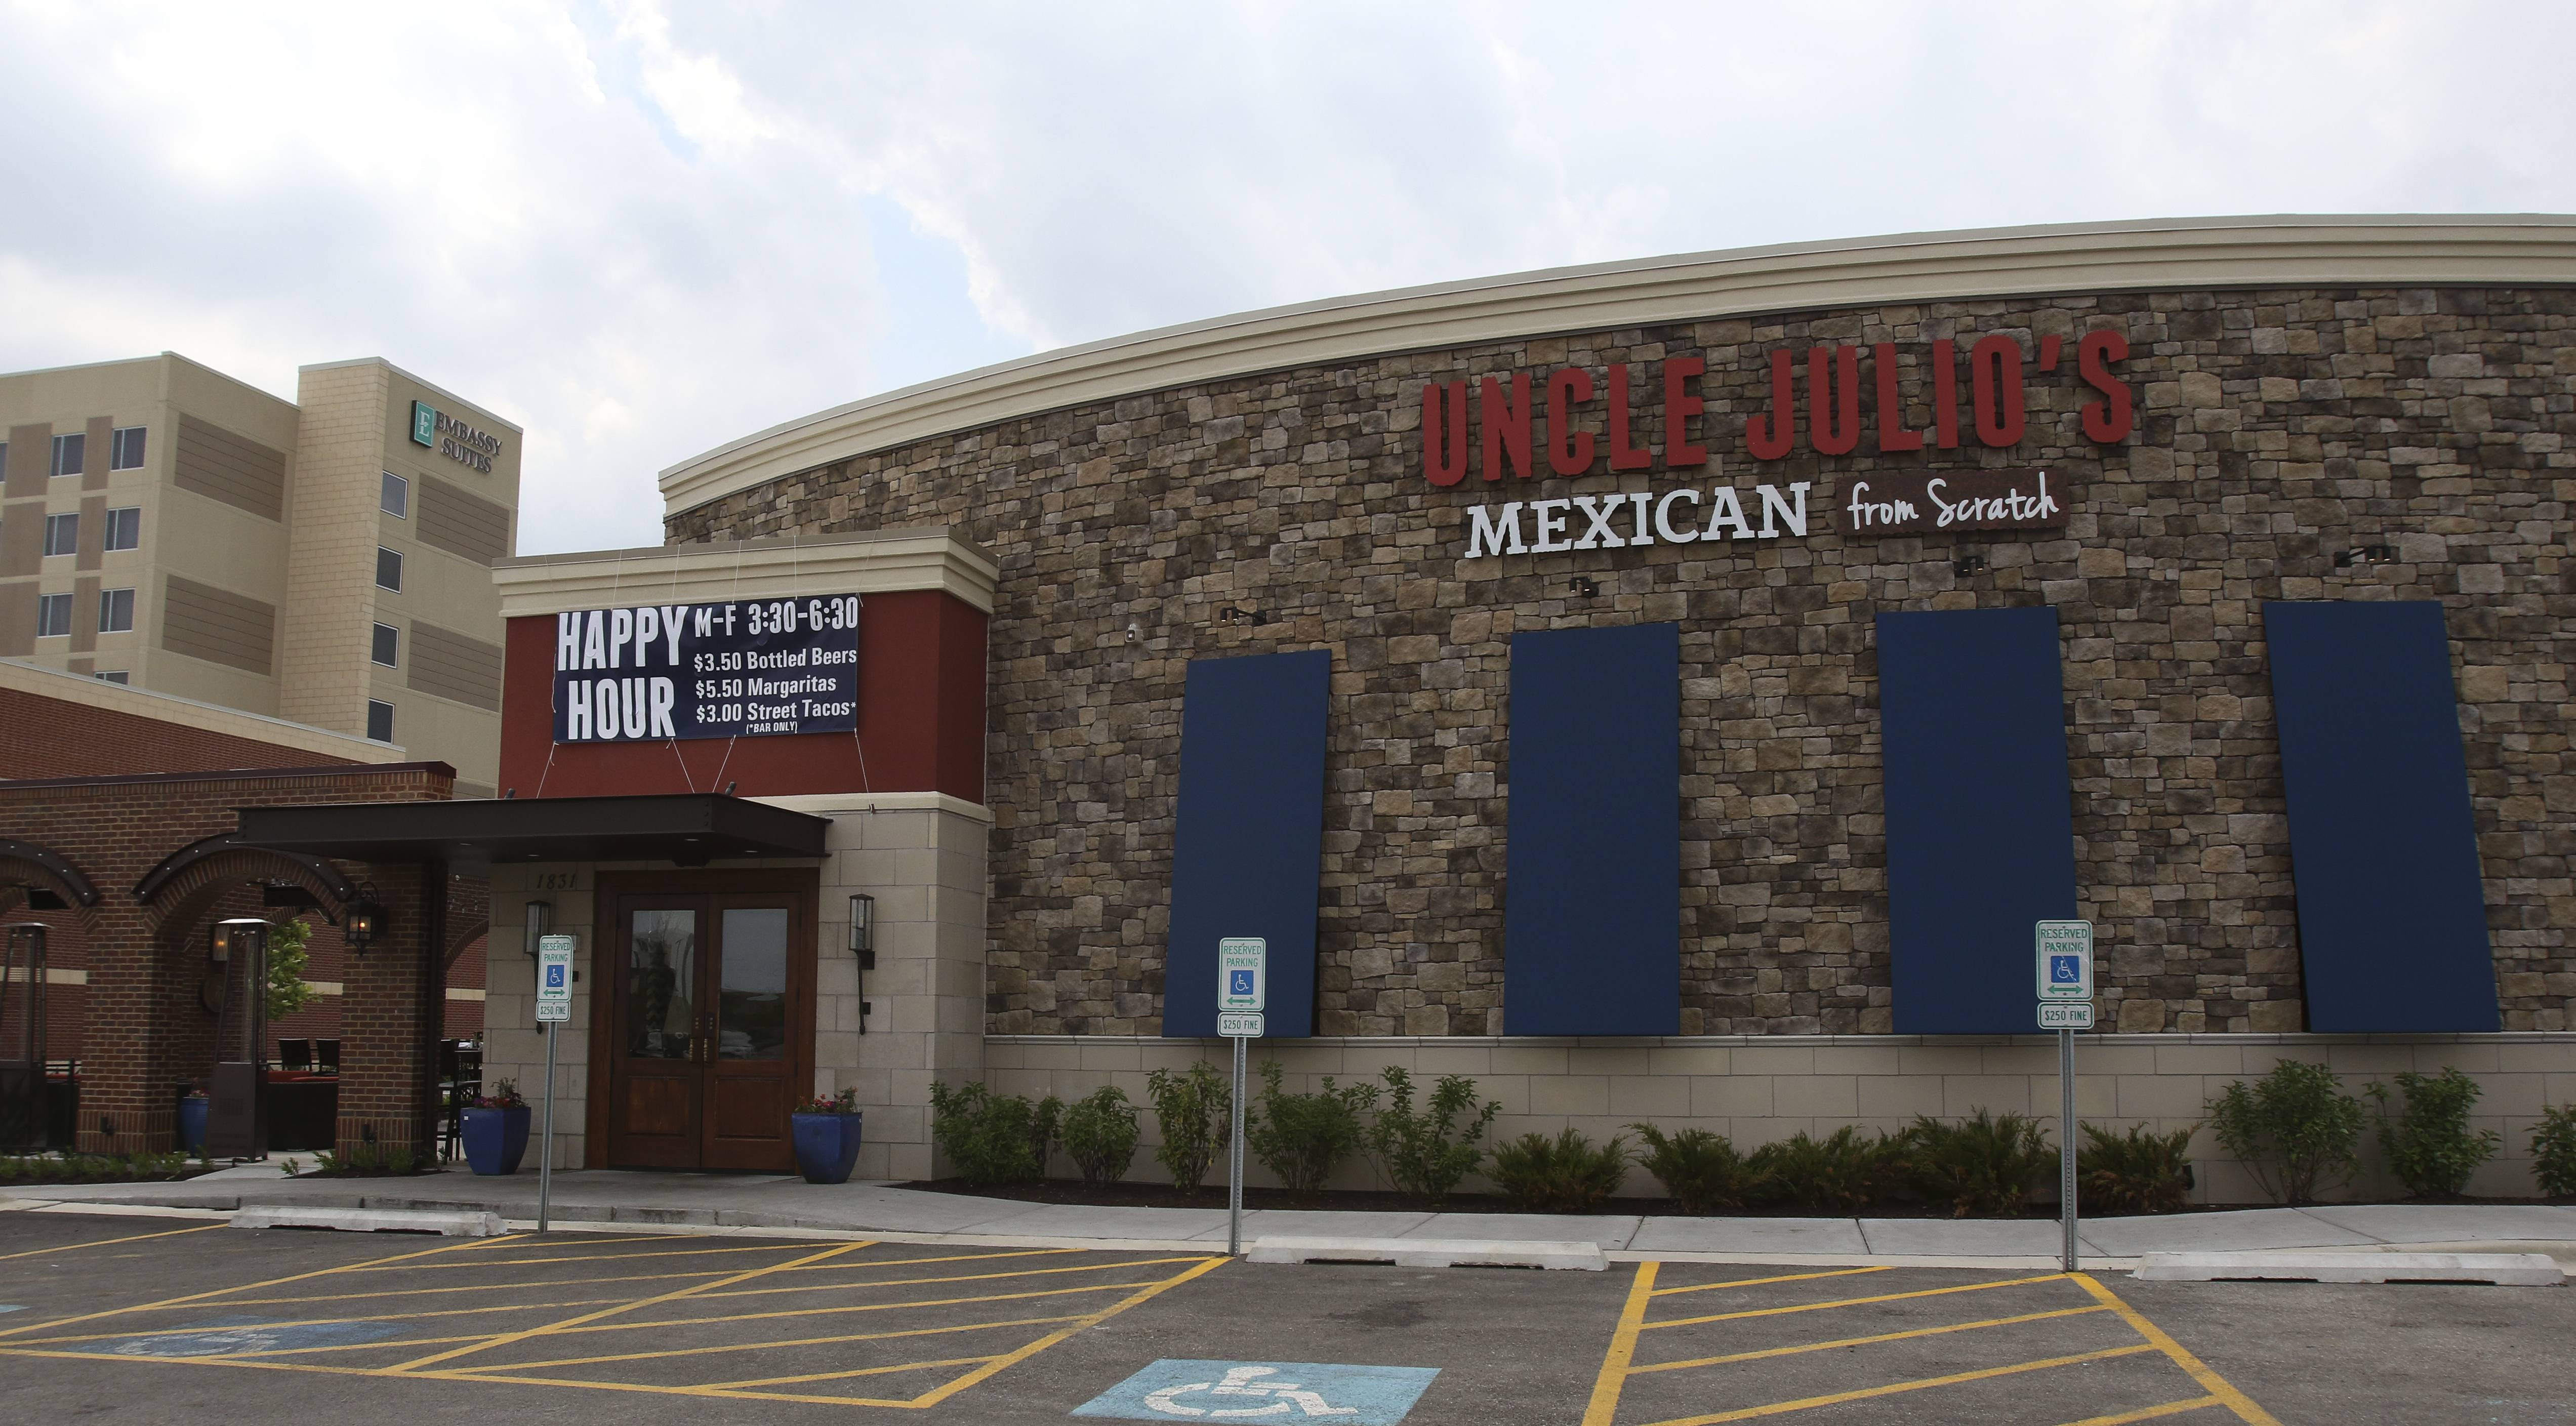 A large private equity firm has purchased the Uncle Julio's chain, including this one in Naperville.